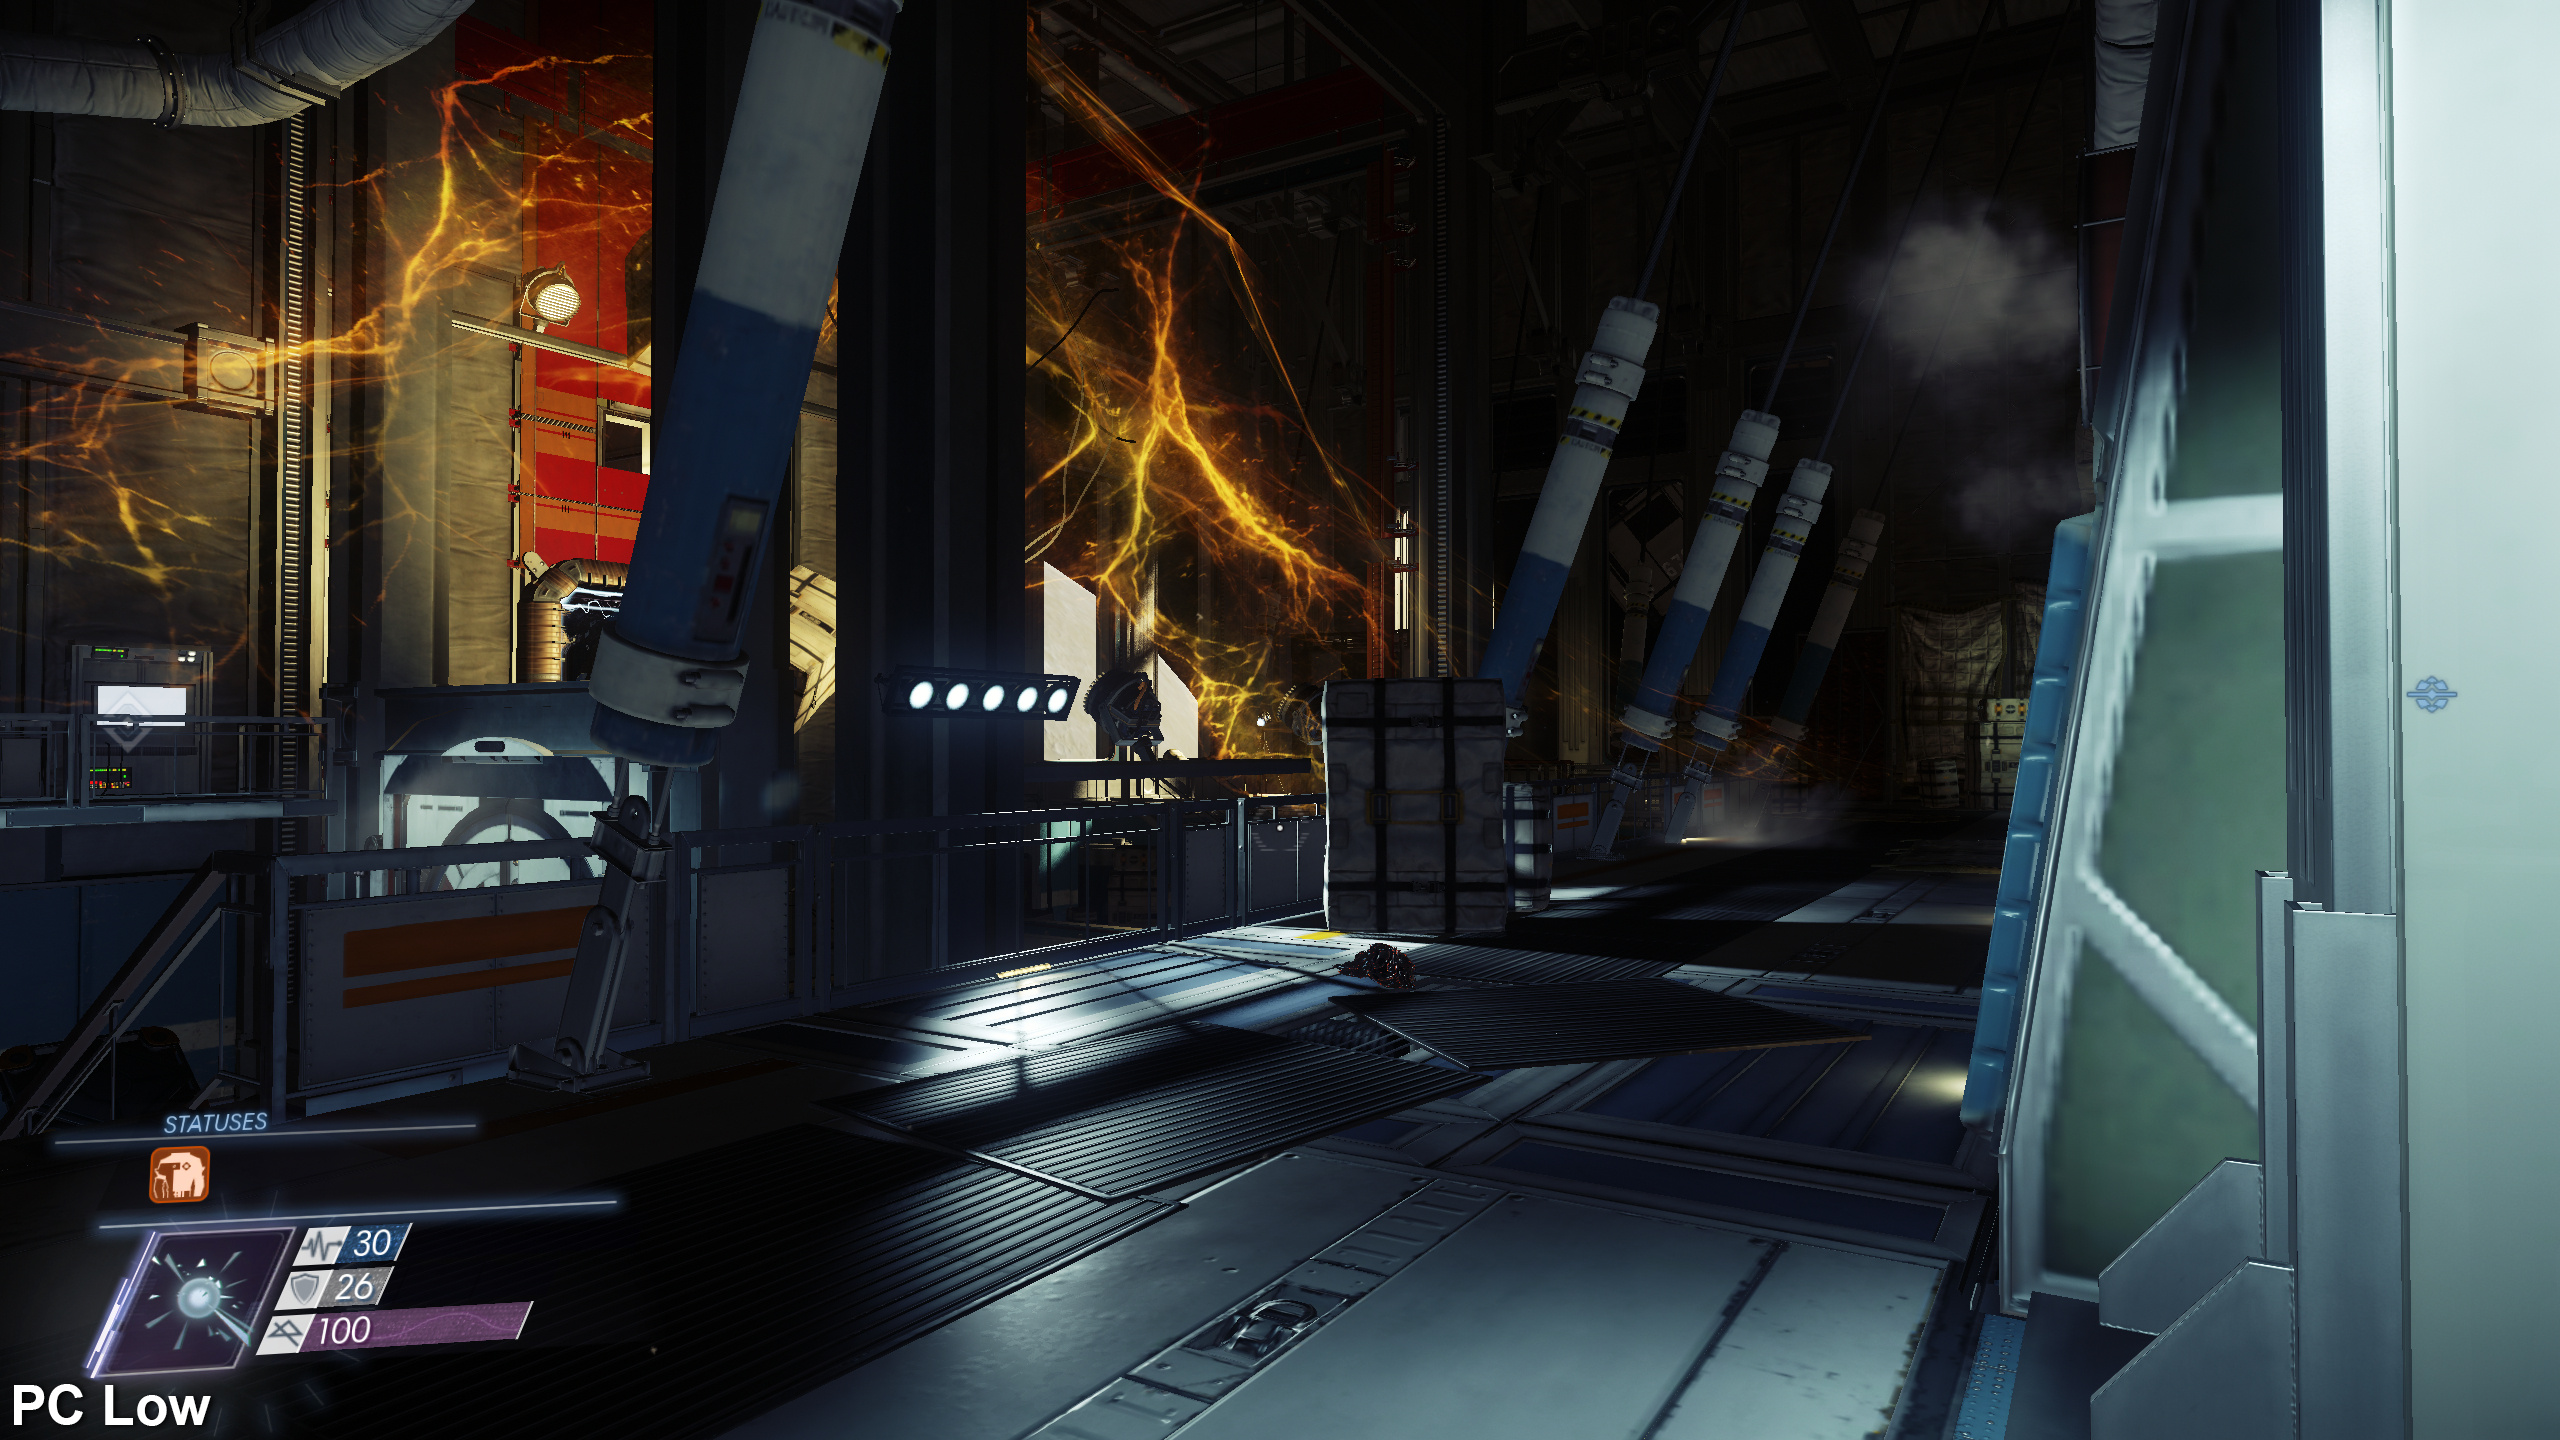 Prey is a love letter to the PC gamer